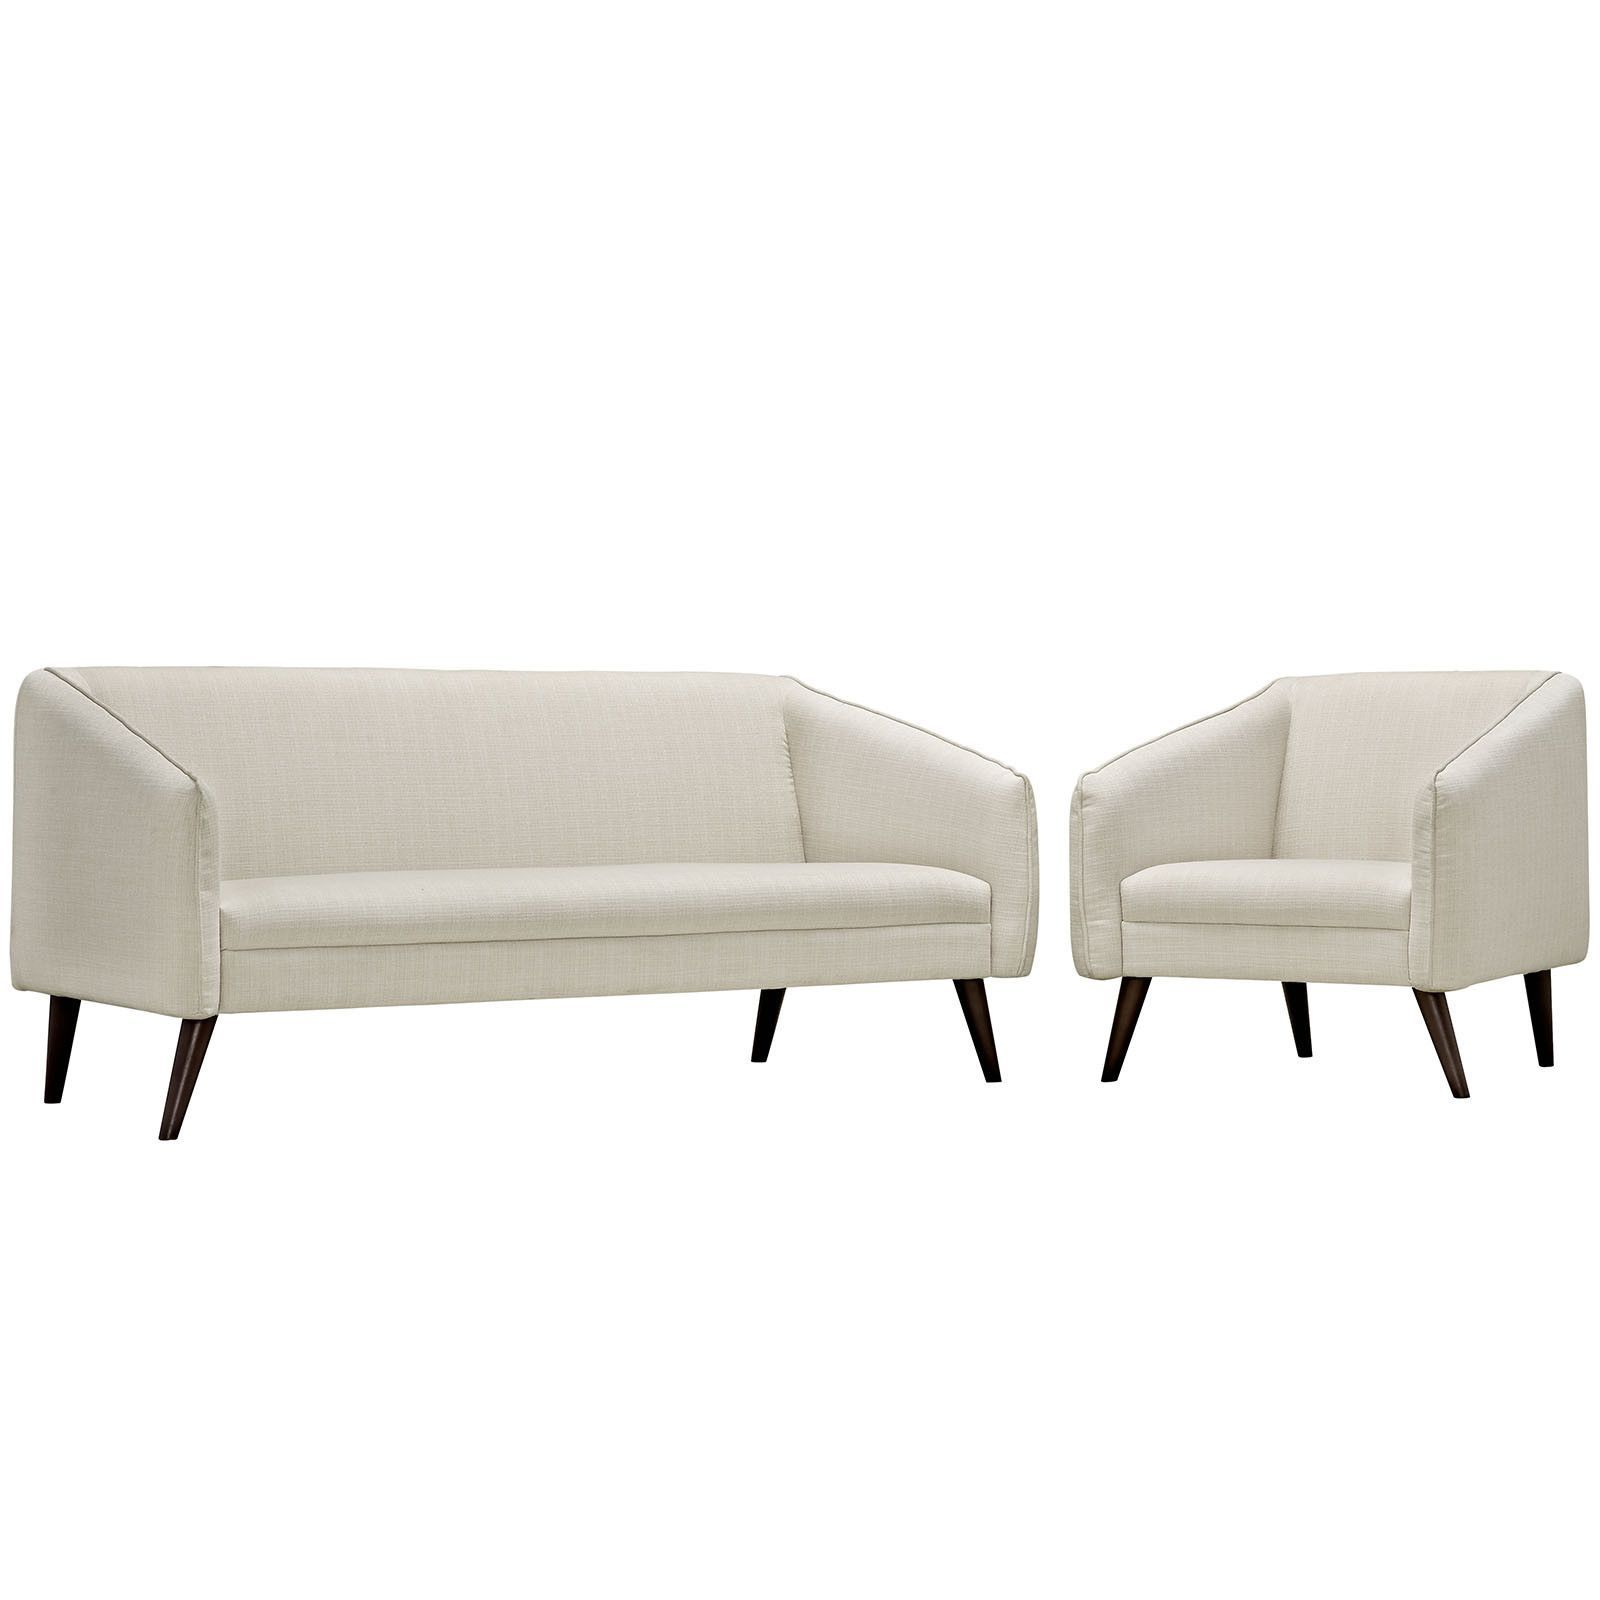 Slide Sofa Contemporary Armchair Sofa Products